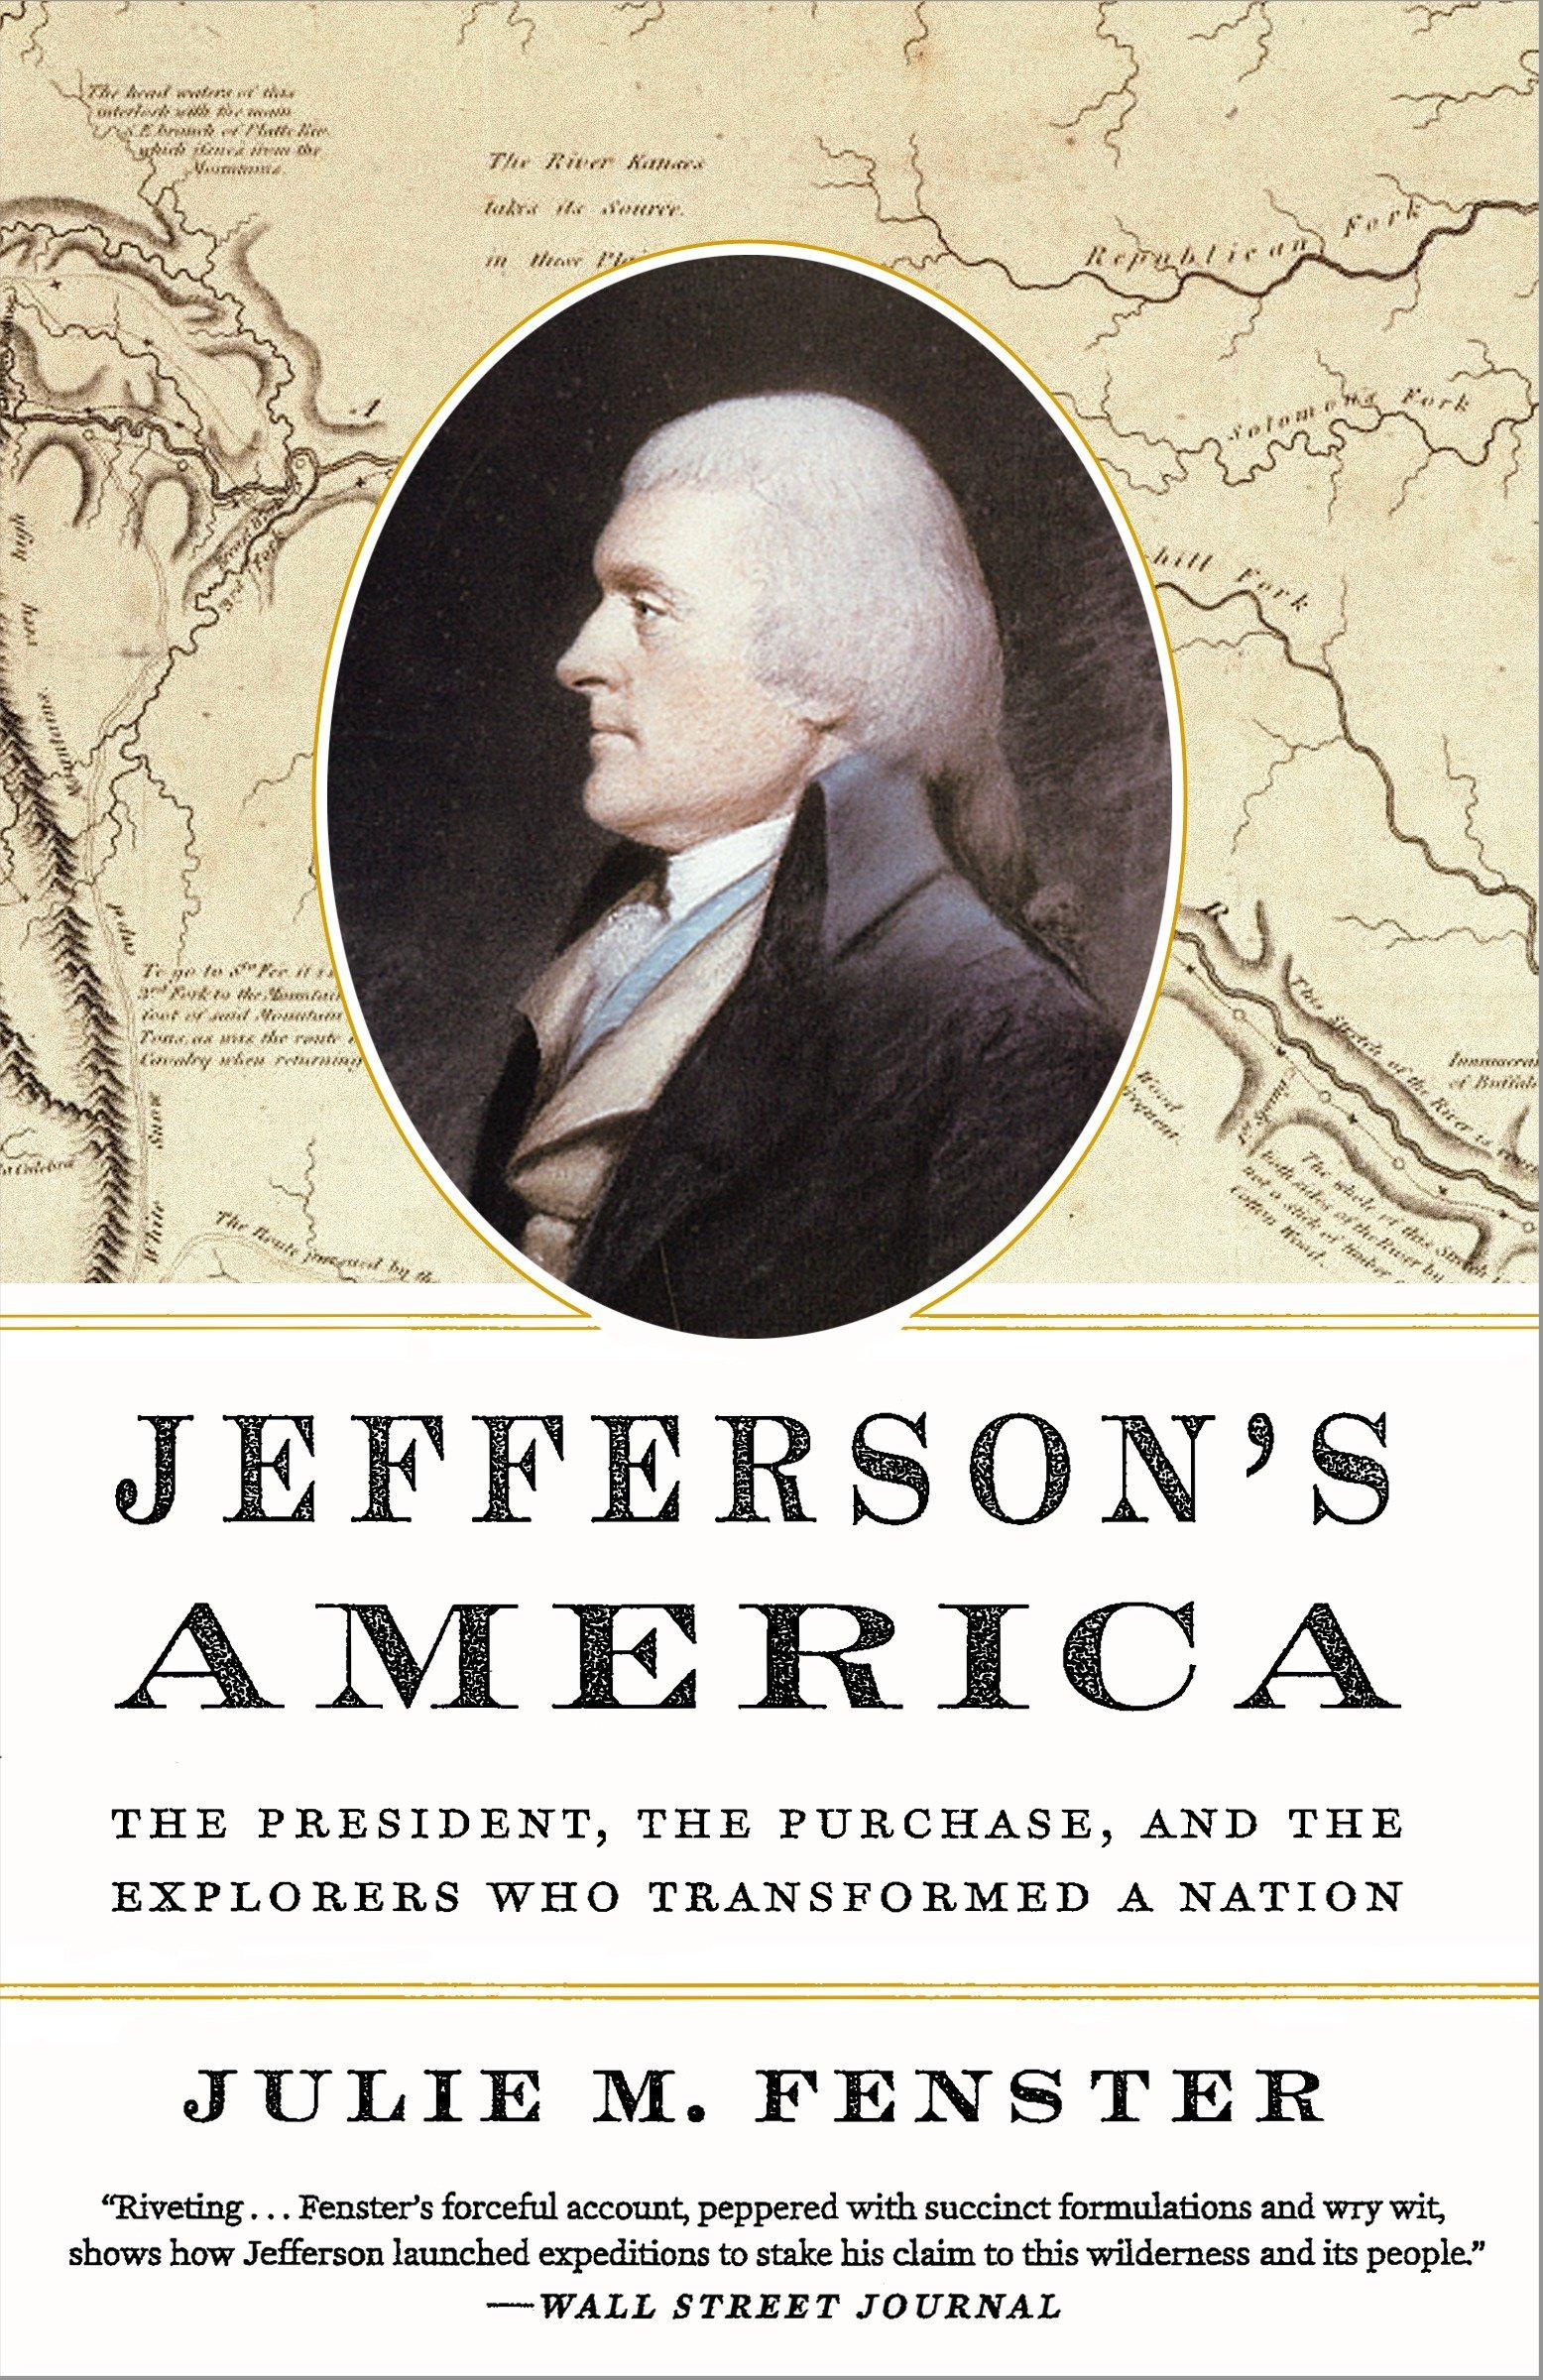 Amazon.com: Jefferson's America: The President, the Purchase, and the  Explorers Who Transformed a Nation (9780307956491): Julie M. Fenster: Books